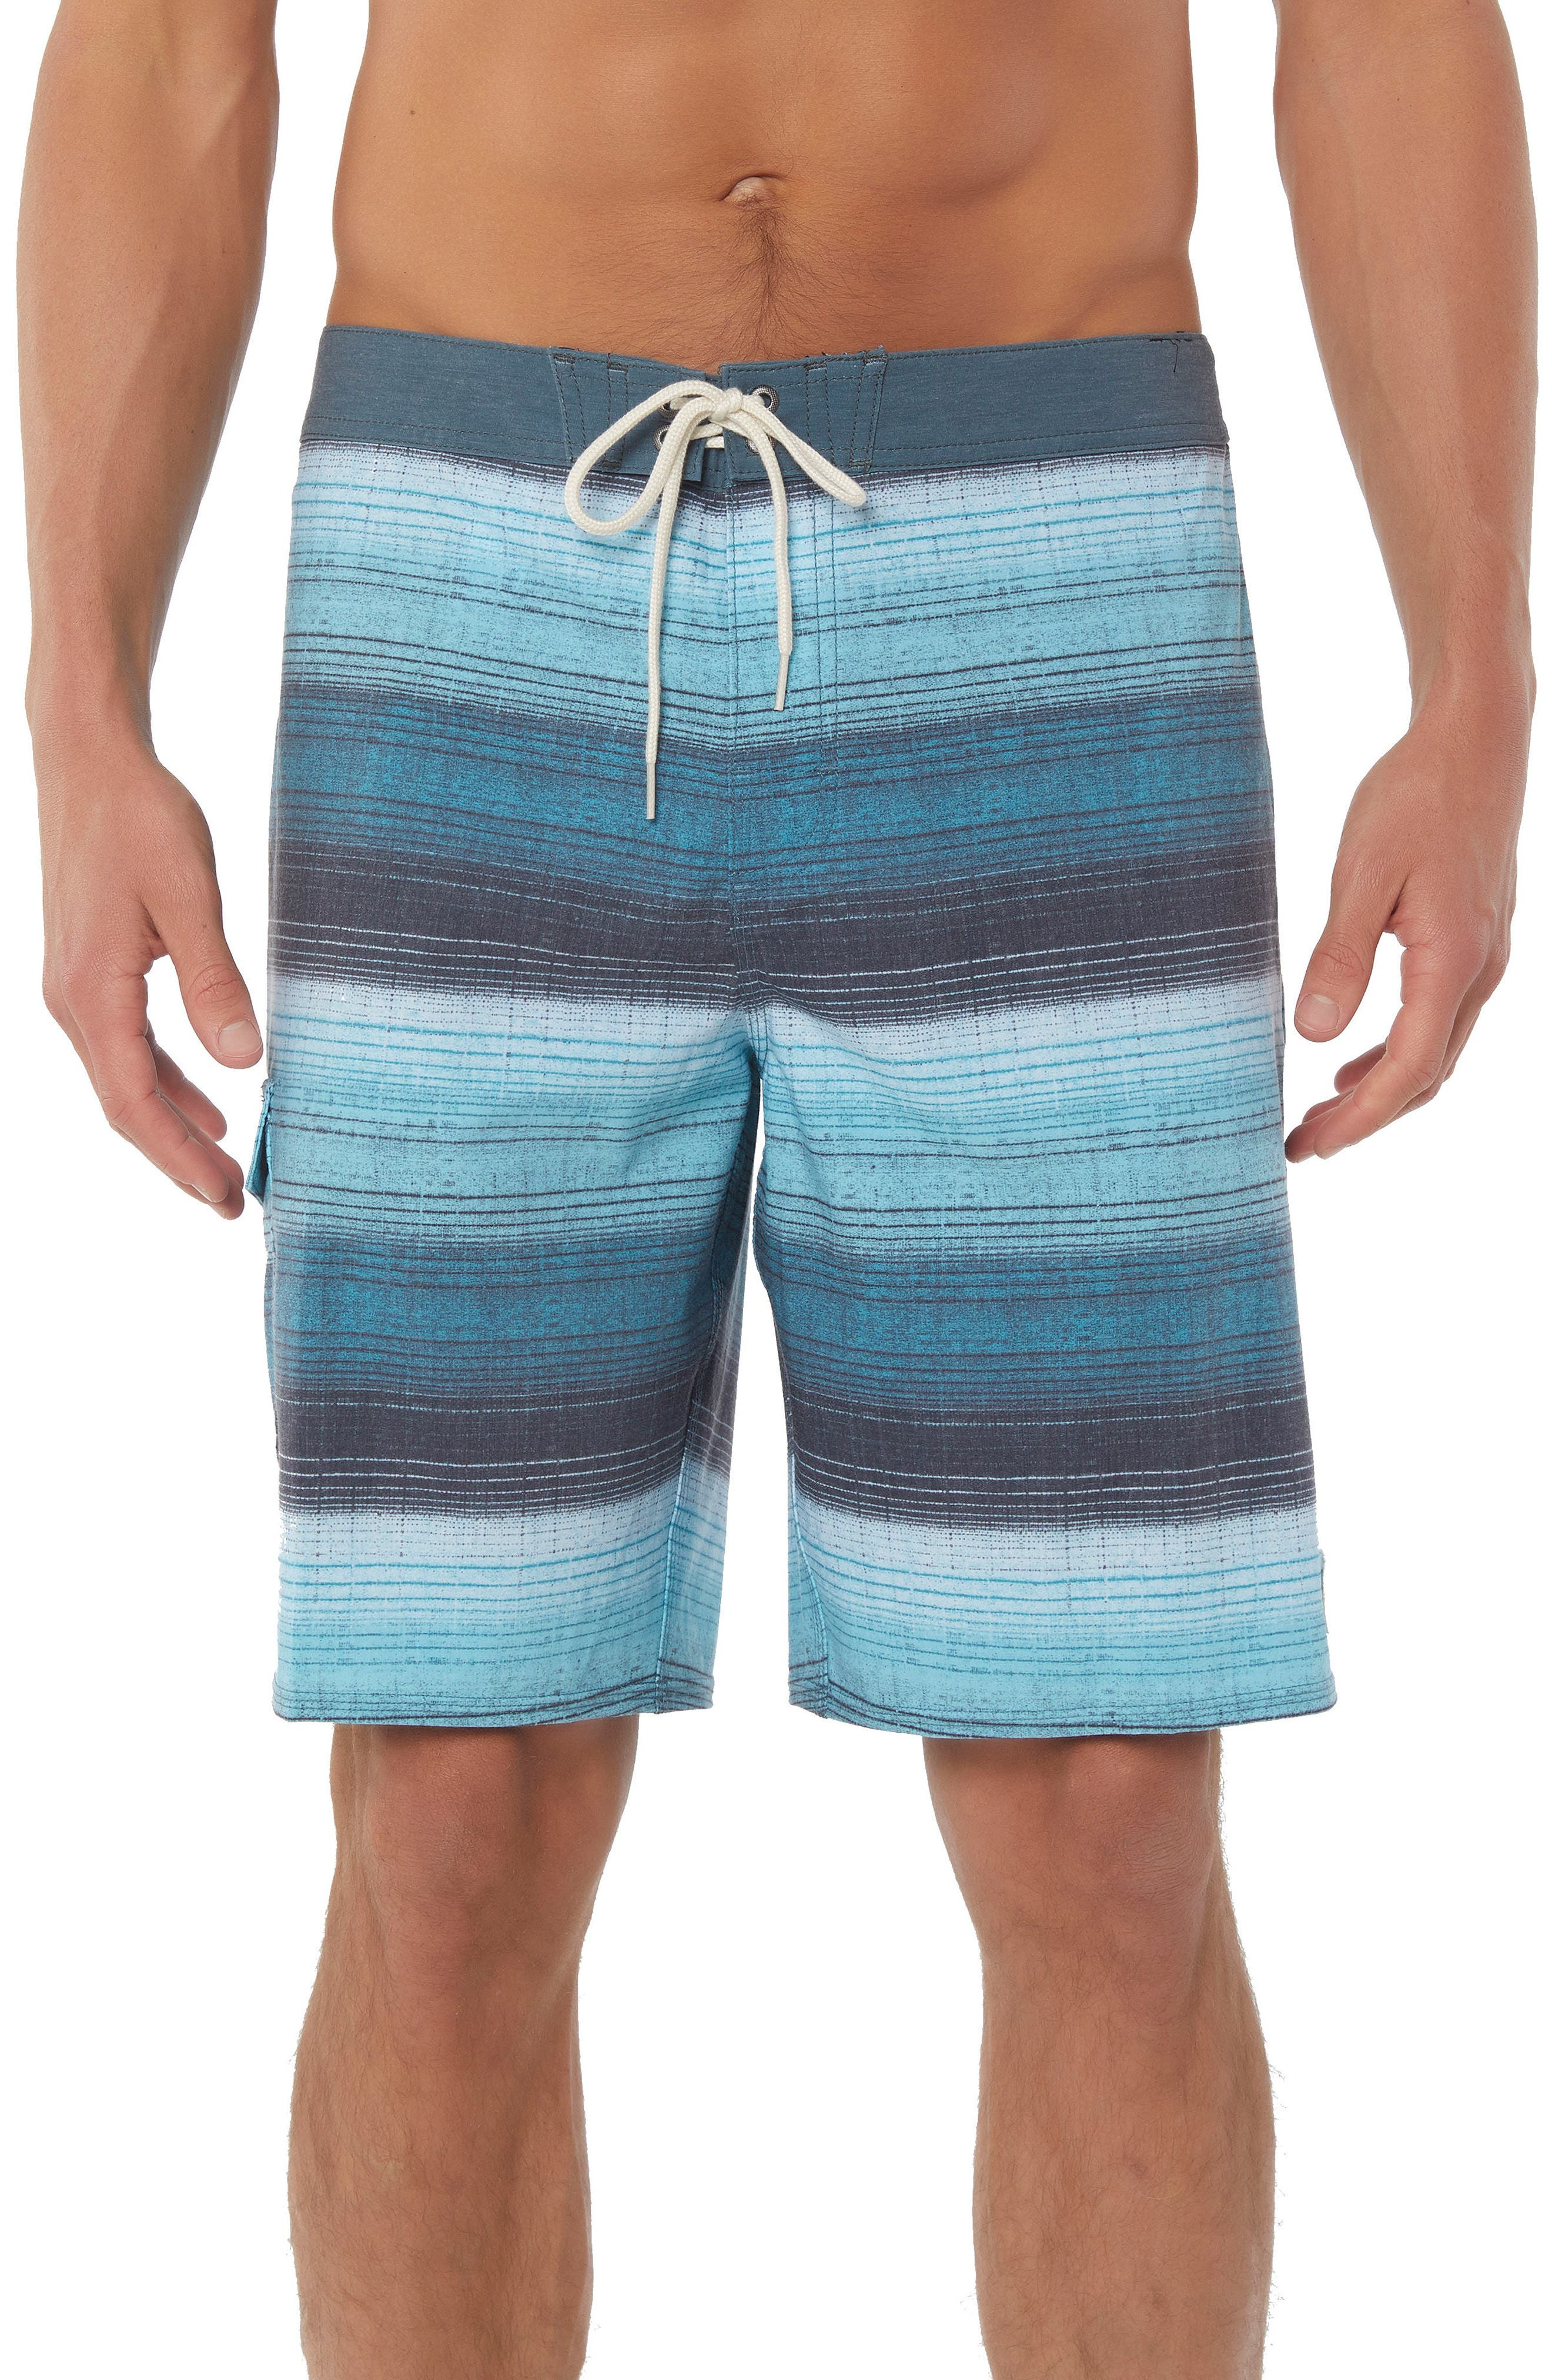 Barrels Swim Trunks,                         Main,                         color, 431